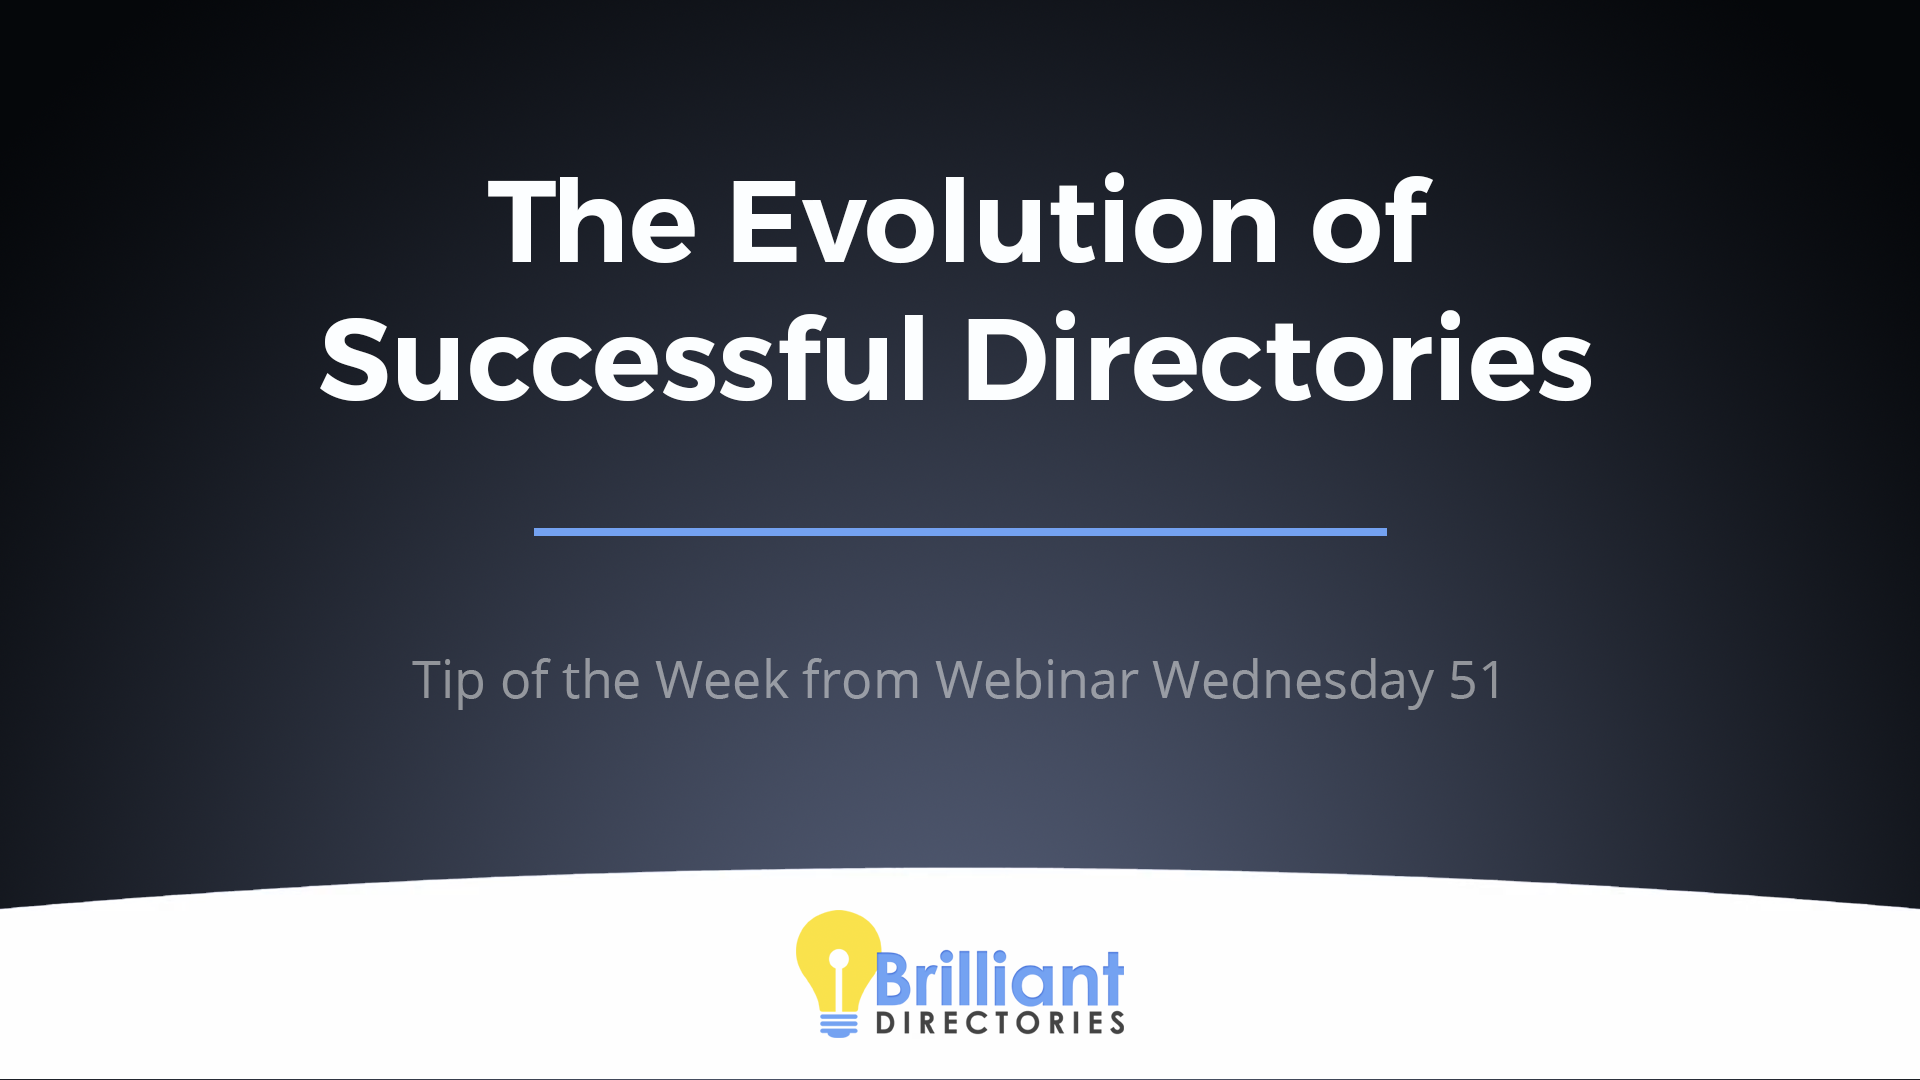 https://www.brilliantdirectories.com/blog/how-to-create-a-successful-membership-community-website-directory-website-tips